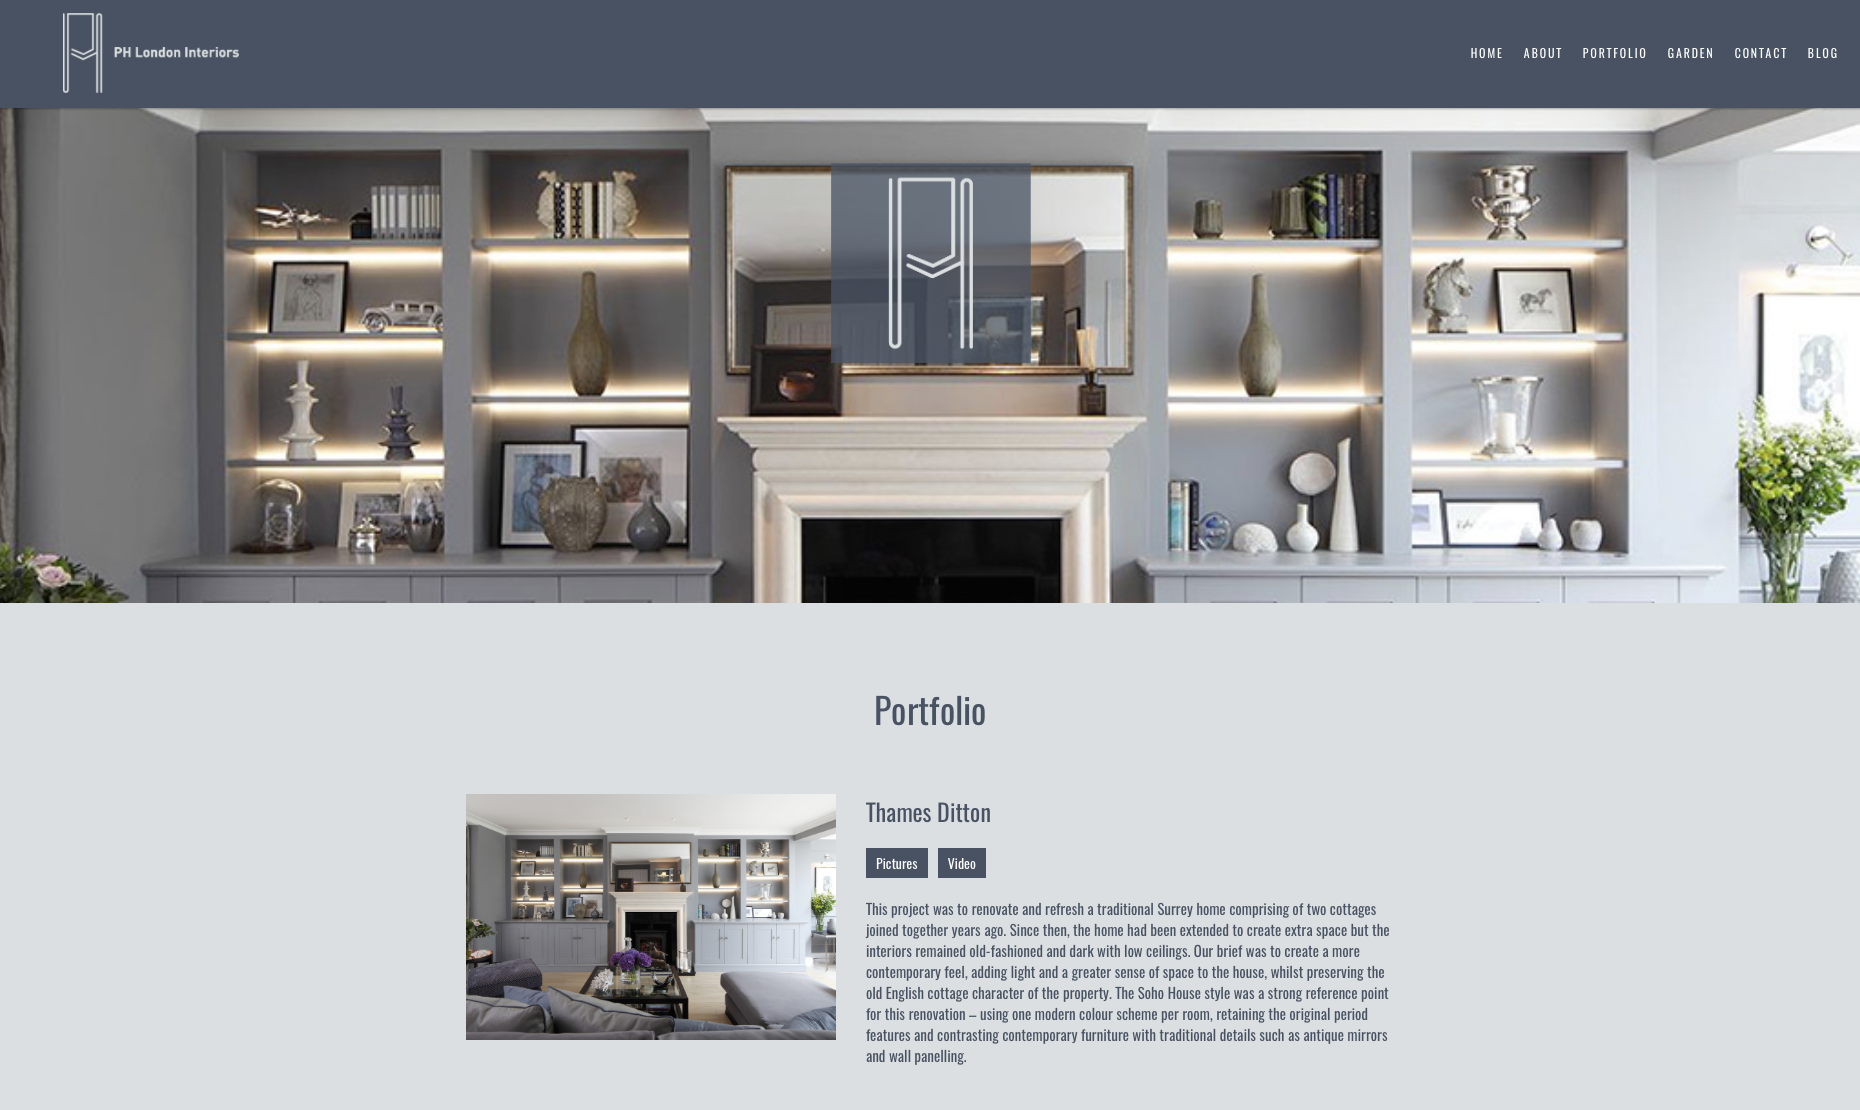 Screenshot of PH London website redesign - Interiors Portfolio Section